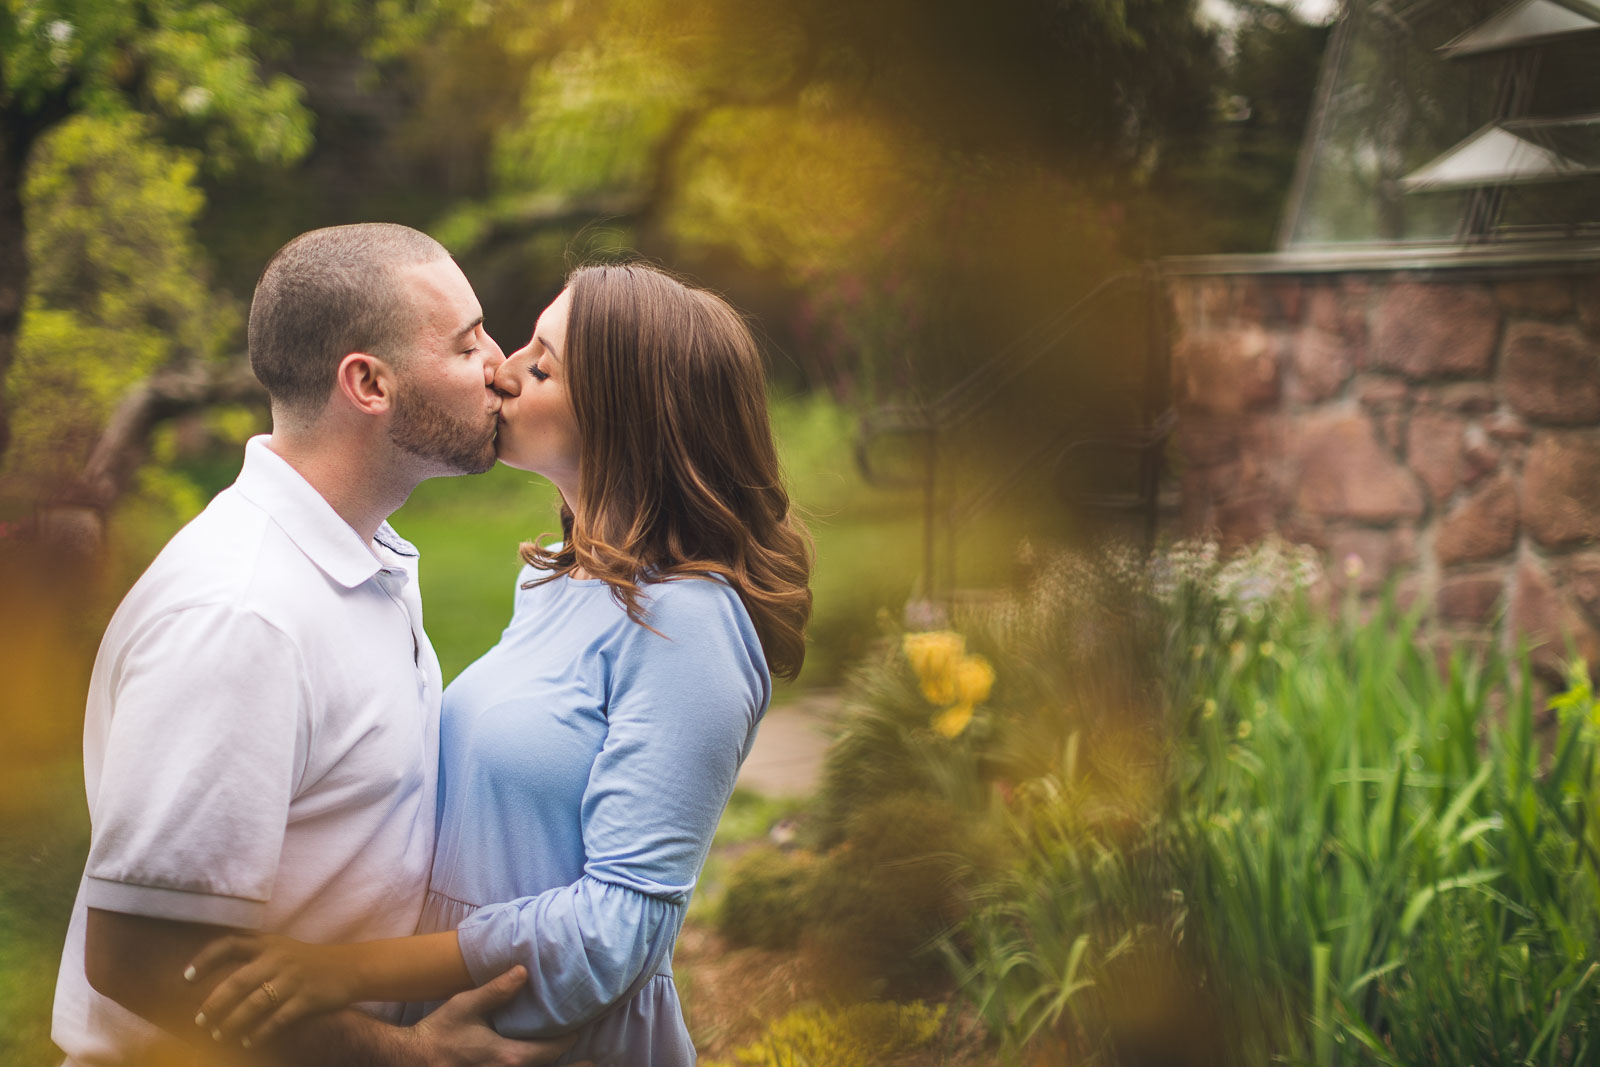 willowwood-arboretum-engagement-kc-07.jpg